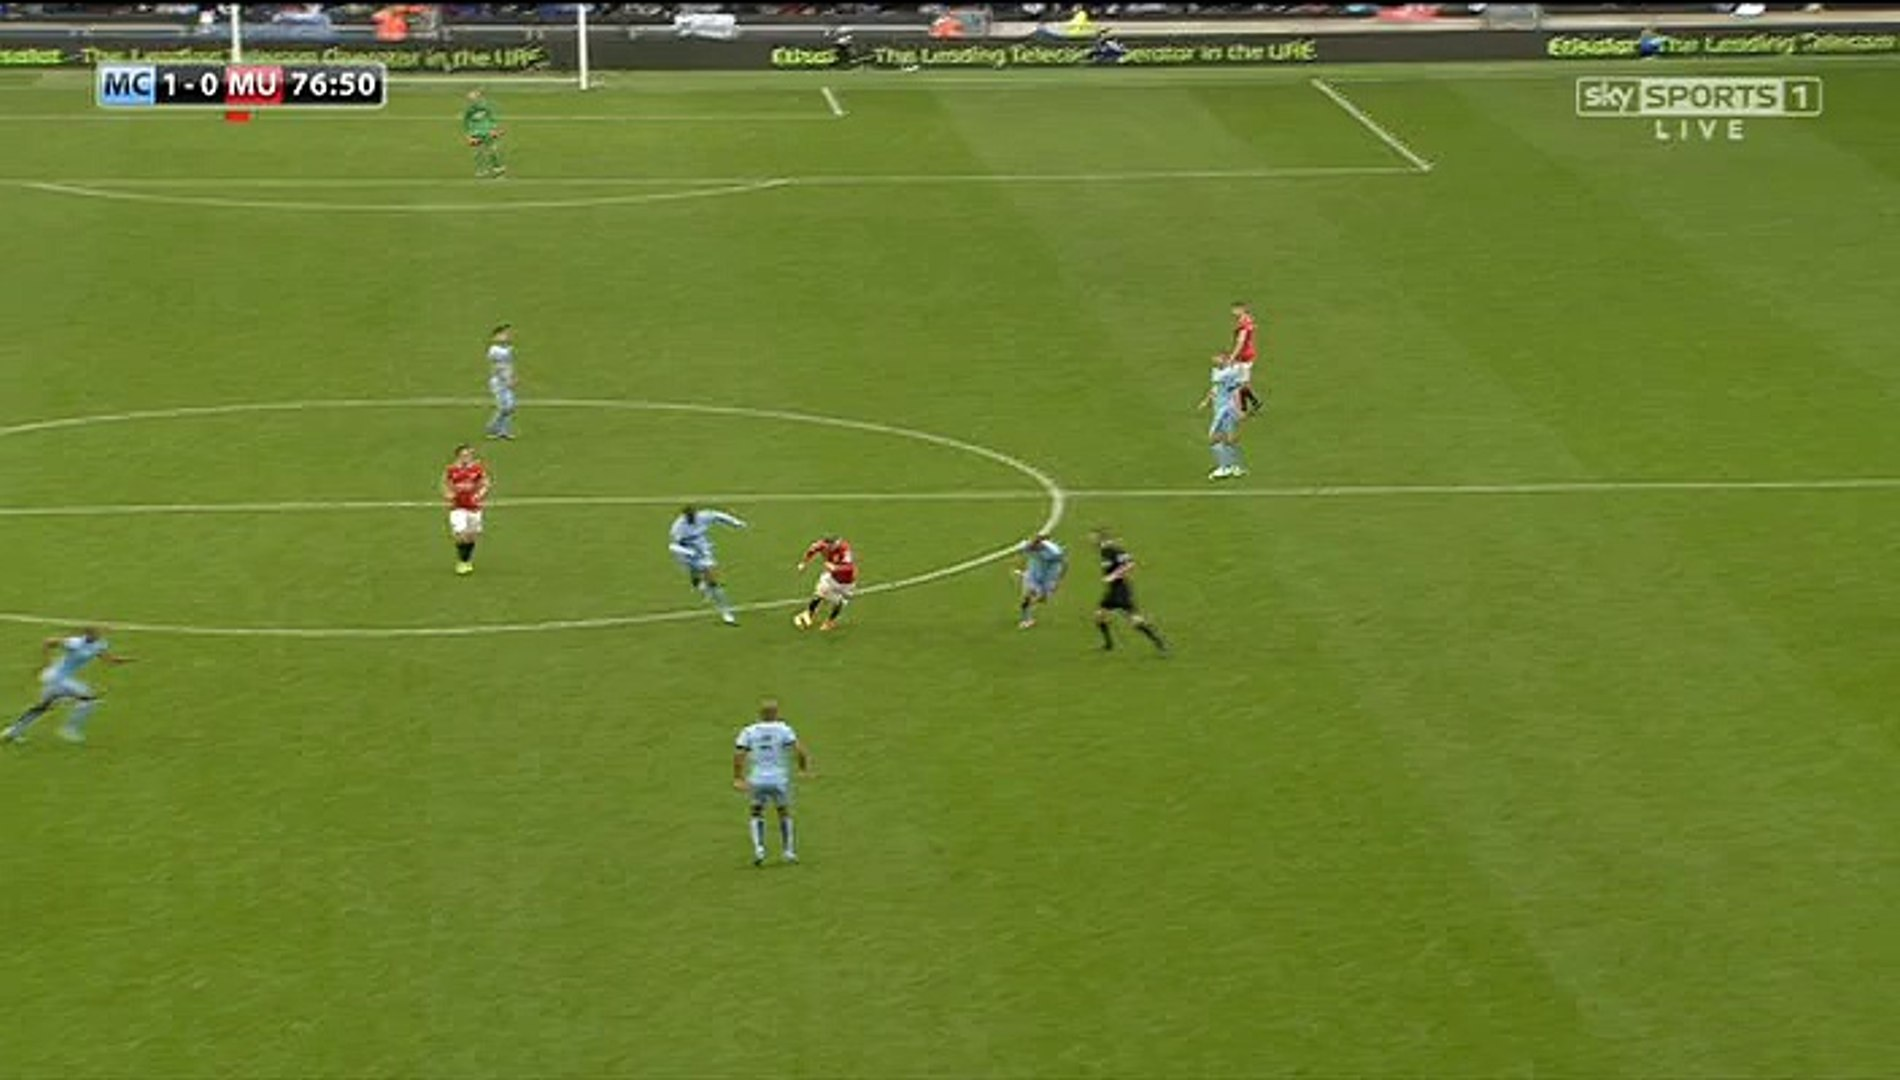 Ronney Run -  Manchester City vs Manchester United Live: English